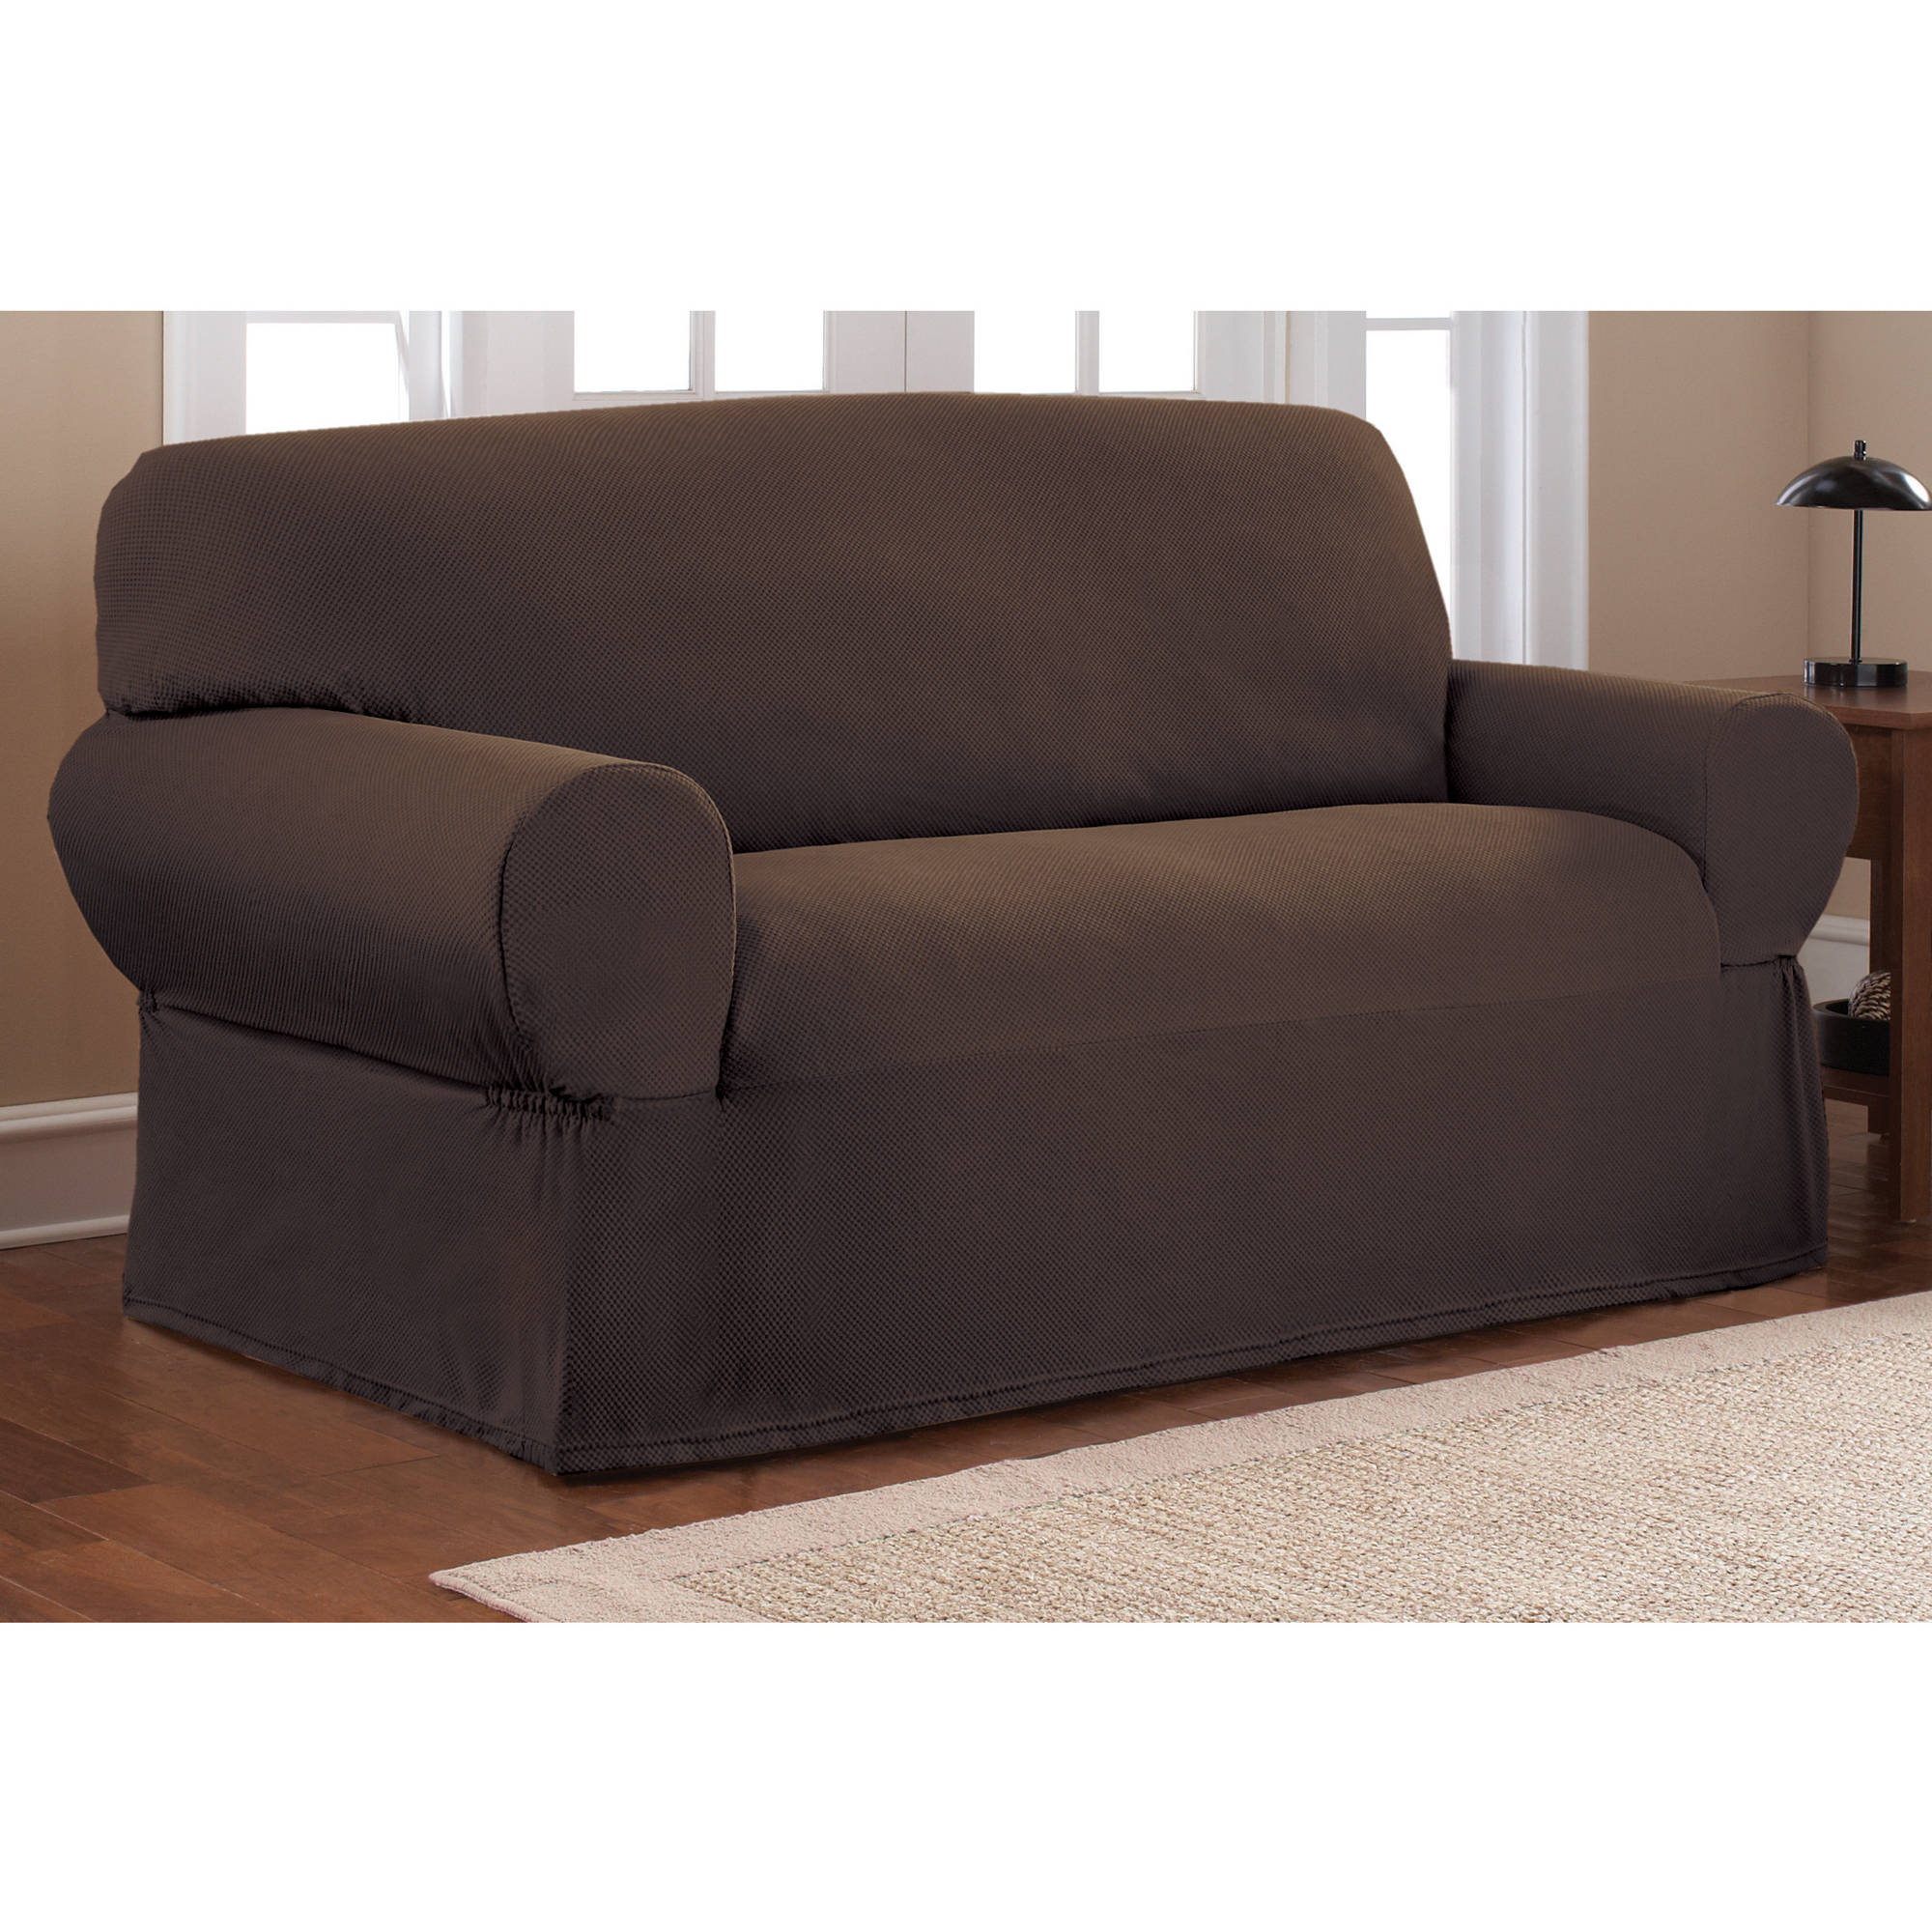 sure fit stretch metro 1 piece sofa slipcover gray small narrow product features